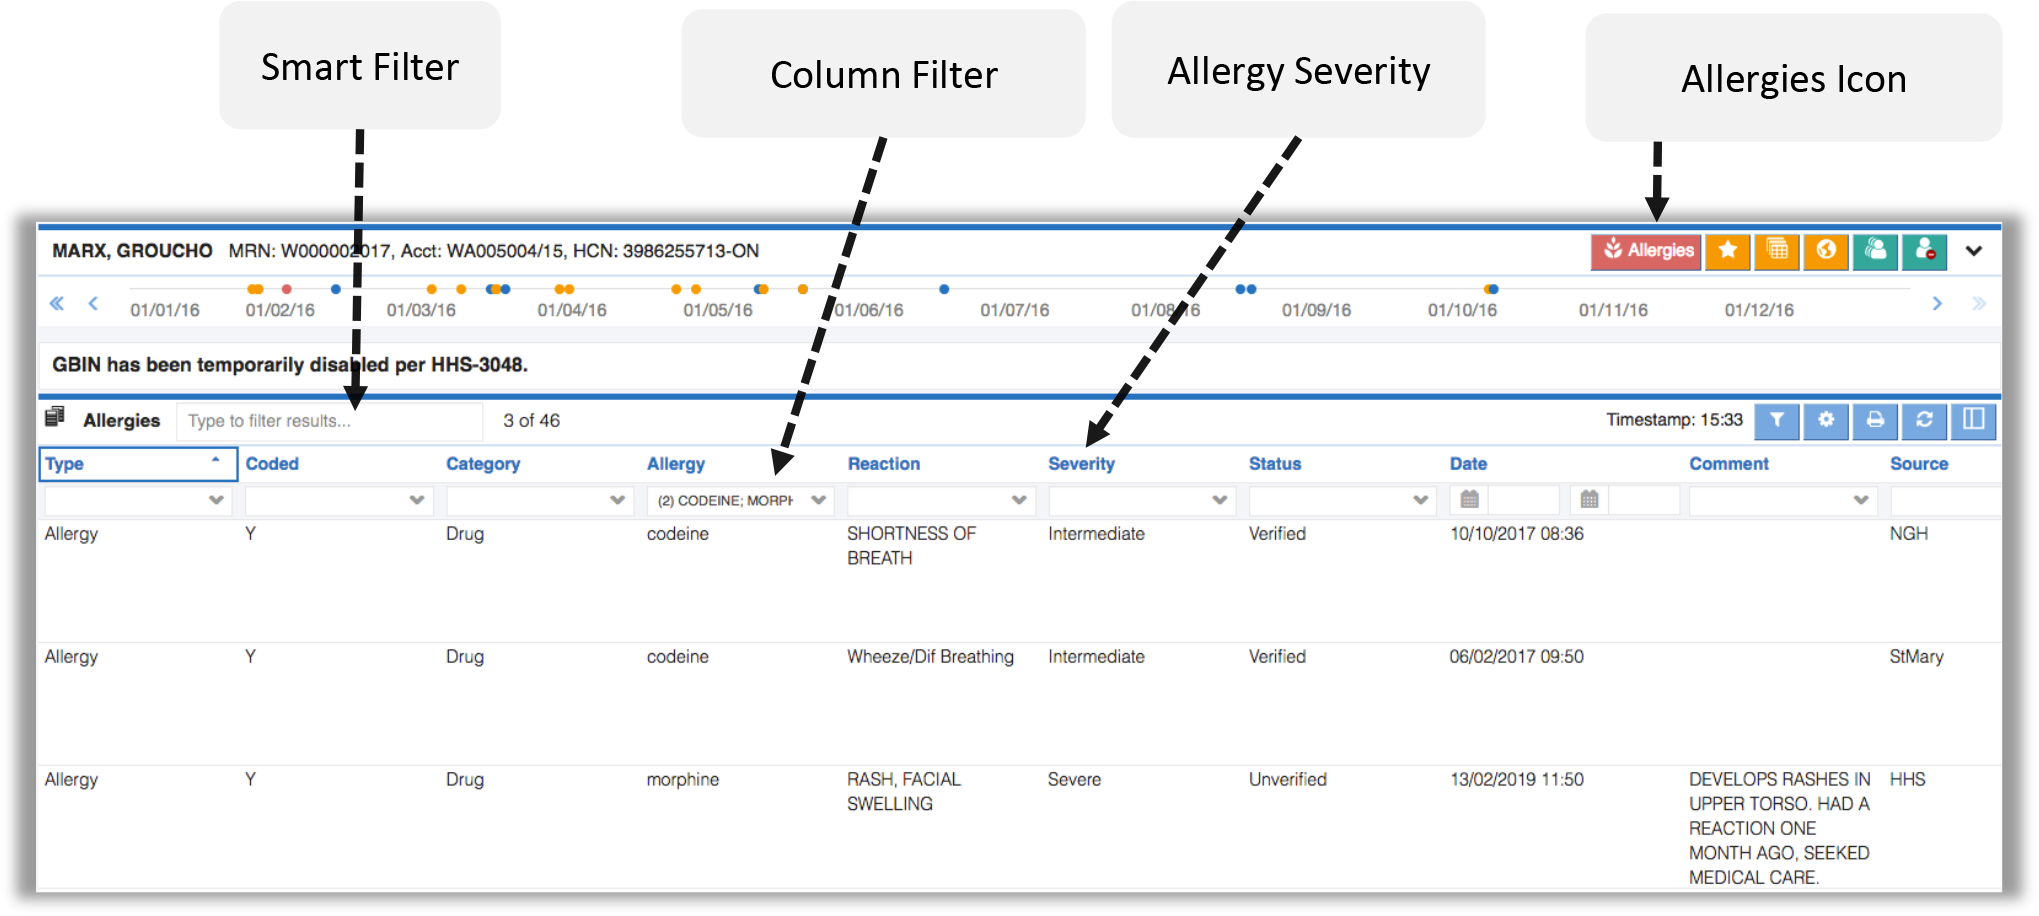 Image showing the smart filter, column filter, allergy severity, and allergies icon for the allergies module